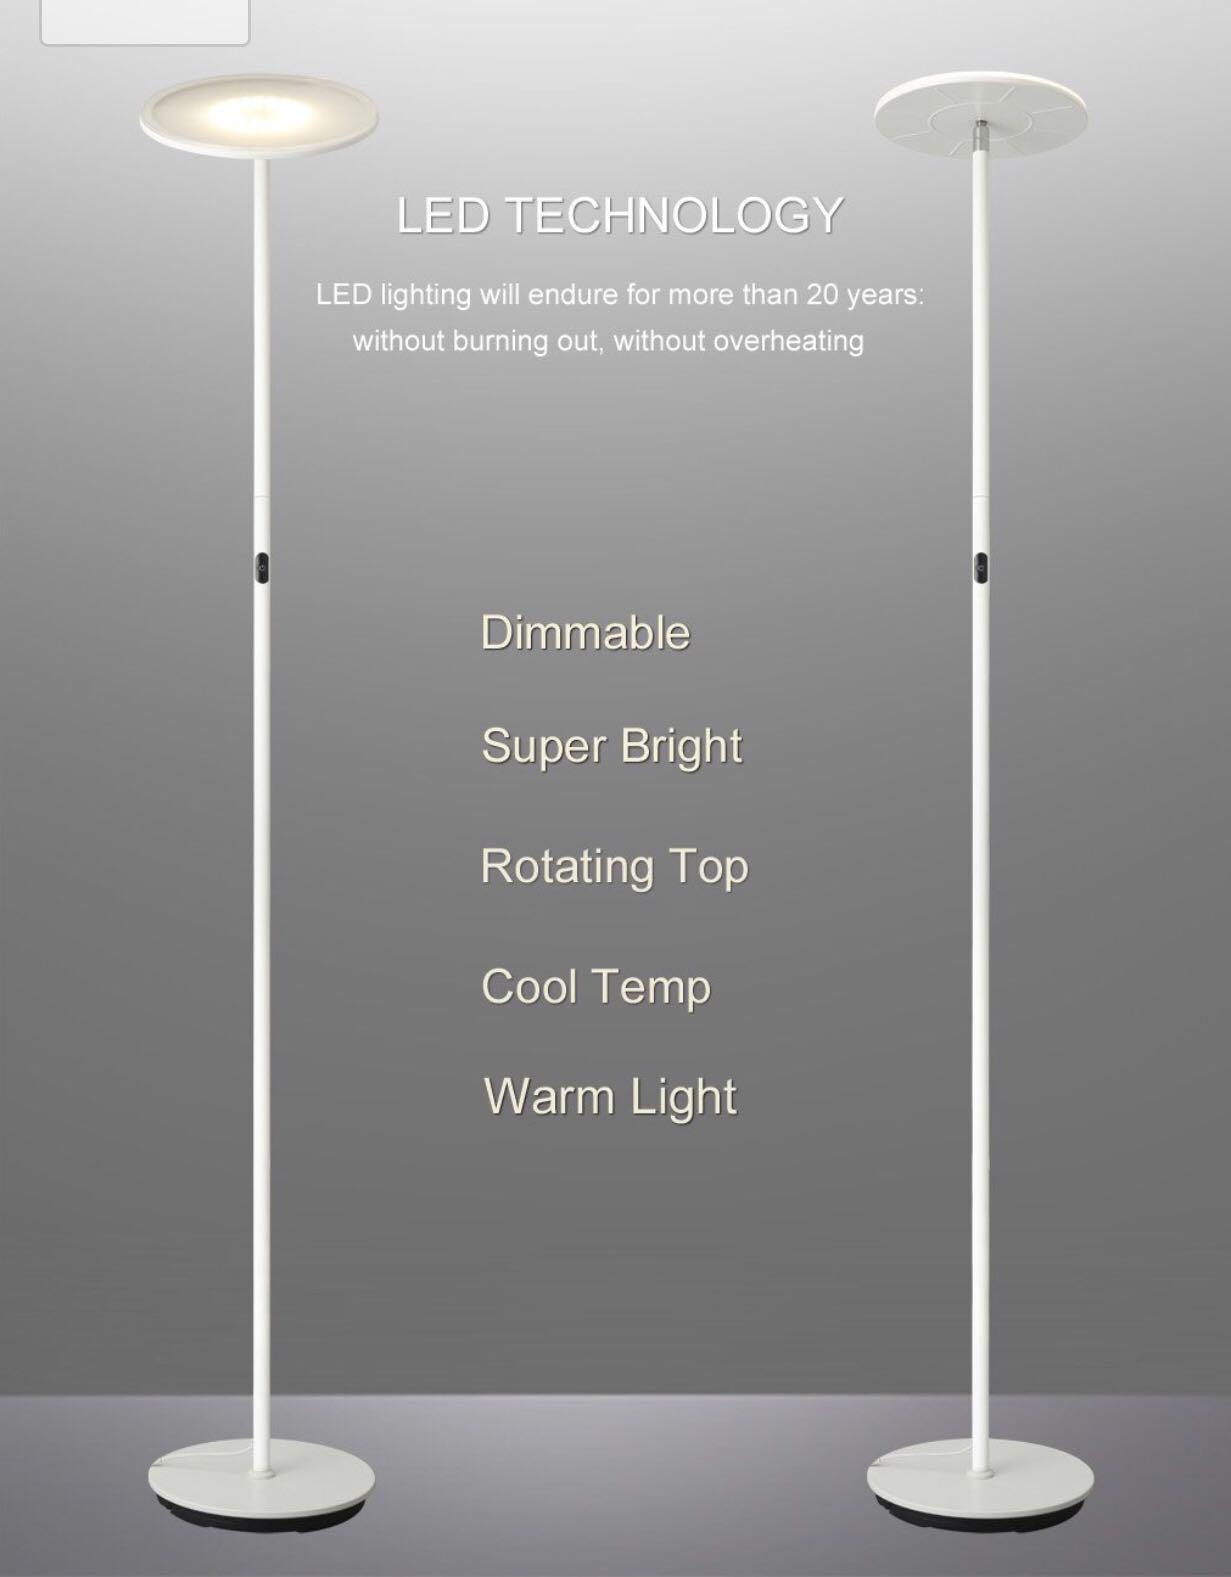 211 Phive Led Floor Lamp Dimmable Super Bright 30w Led Torchiere Floor Lamp 3 Brightness Levels Omni Directional Head Touch Control Warm White Light Modern Uplighter Lamp For Living Room Bedroom